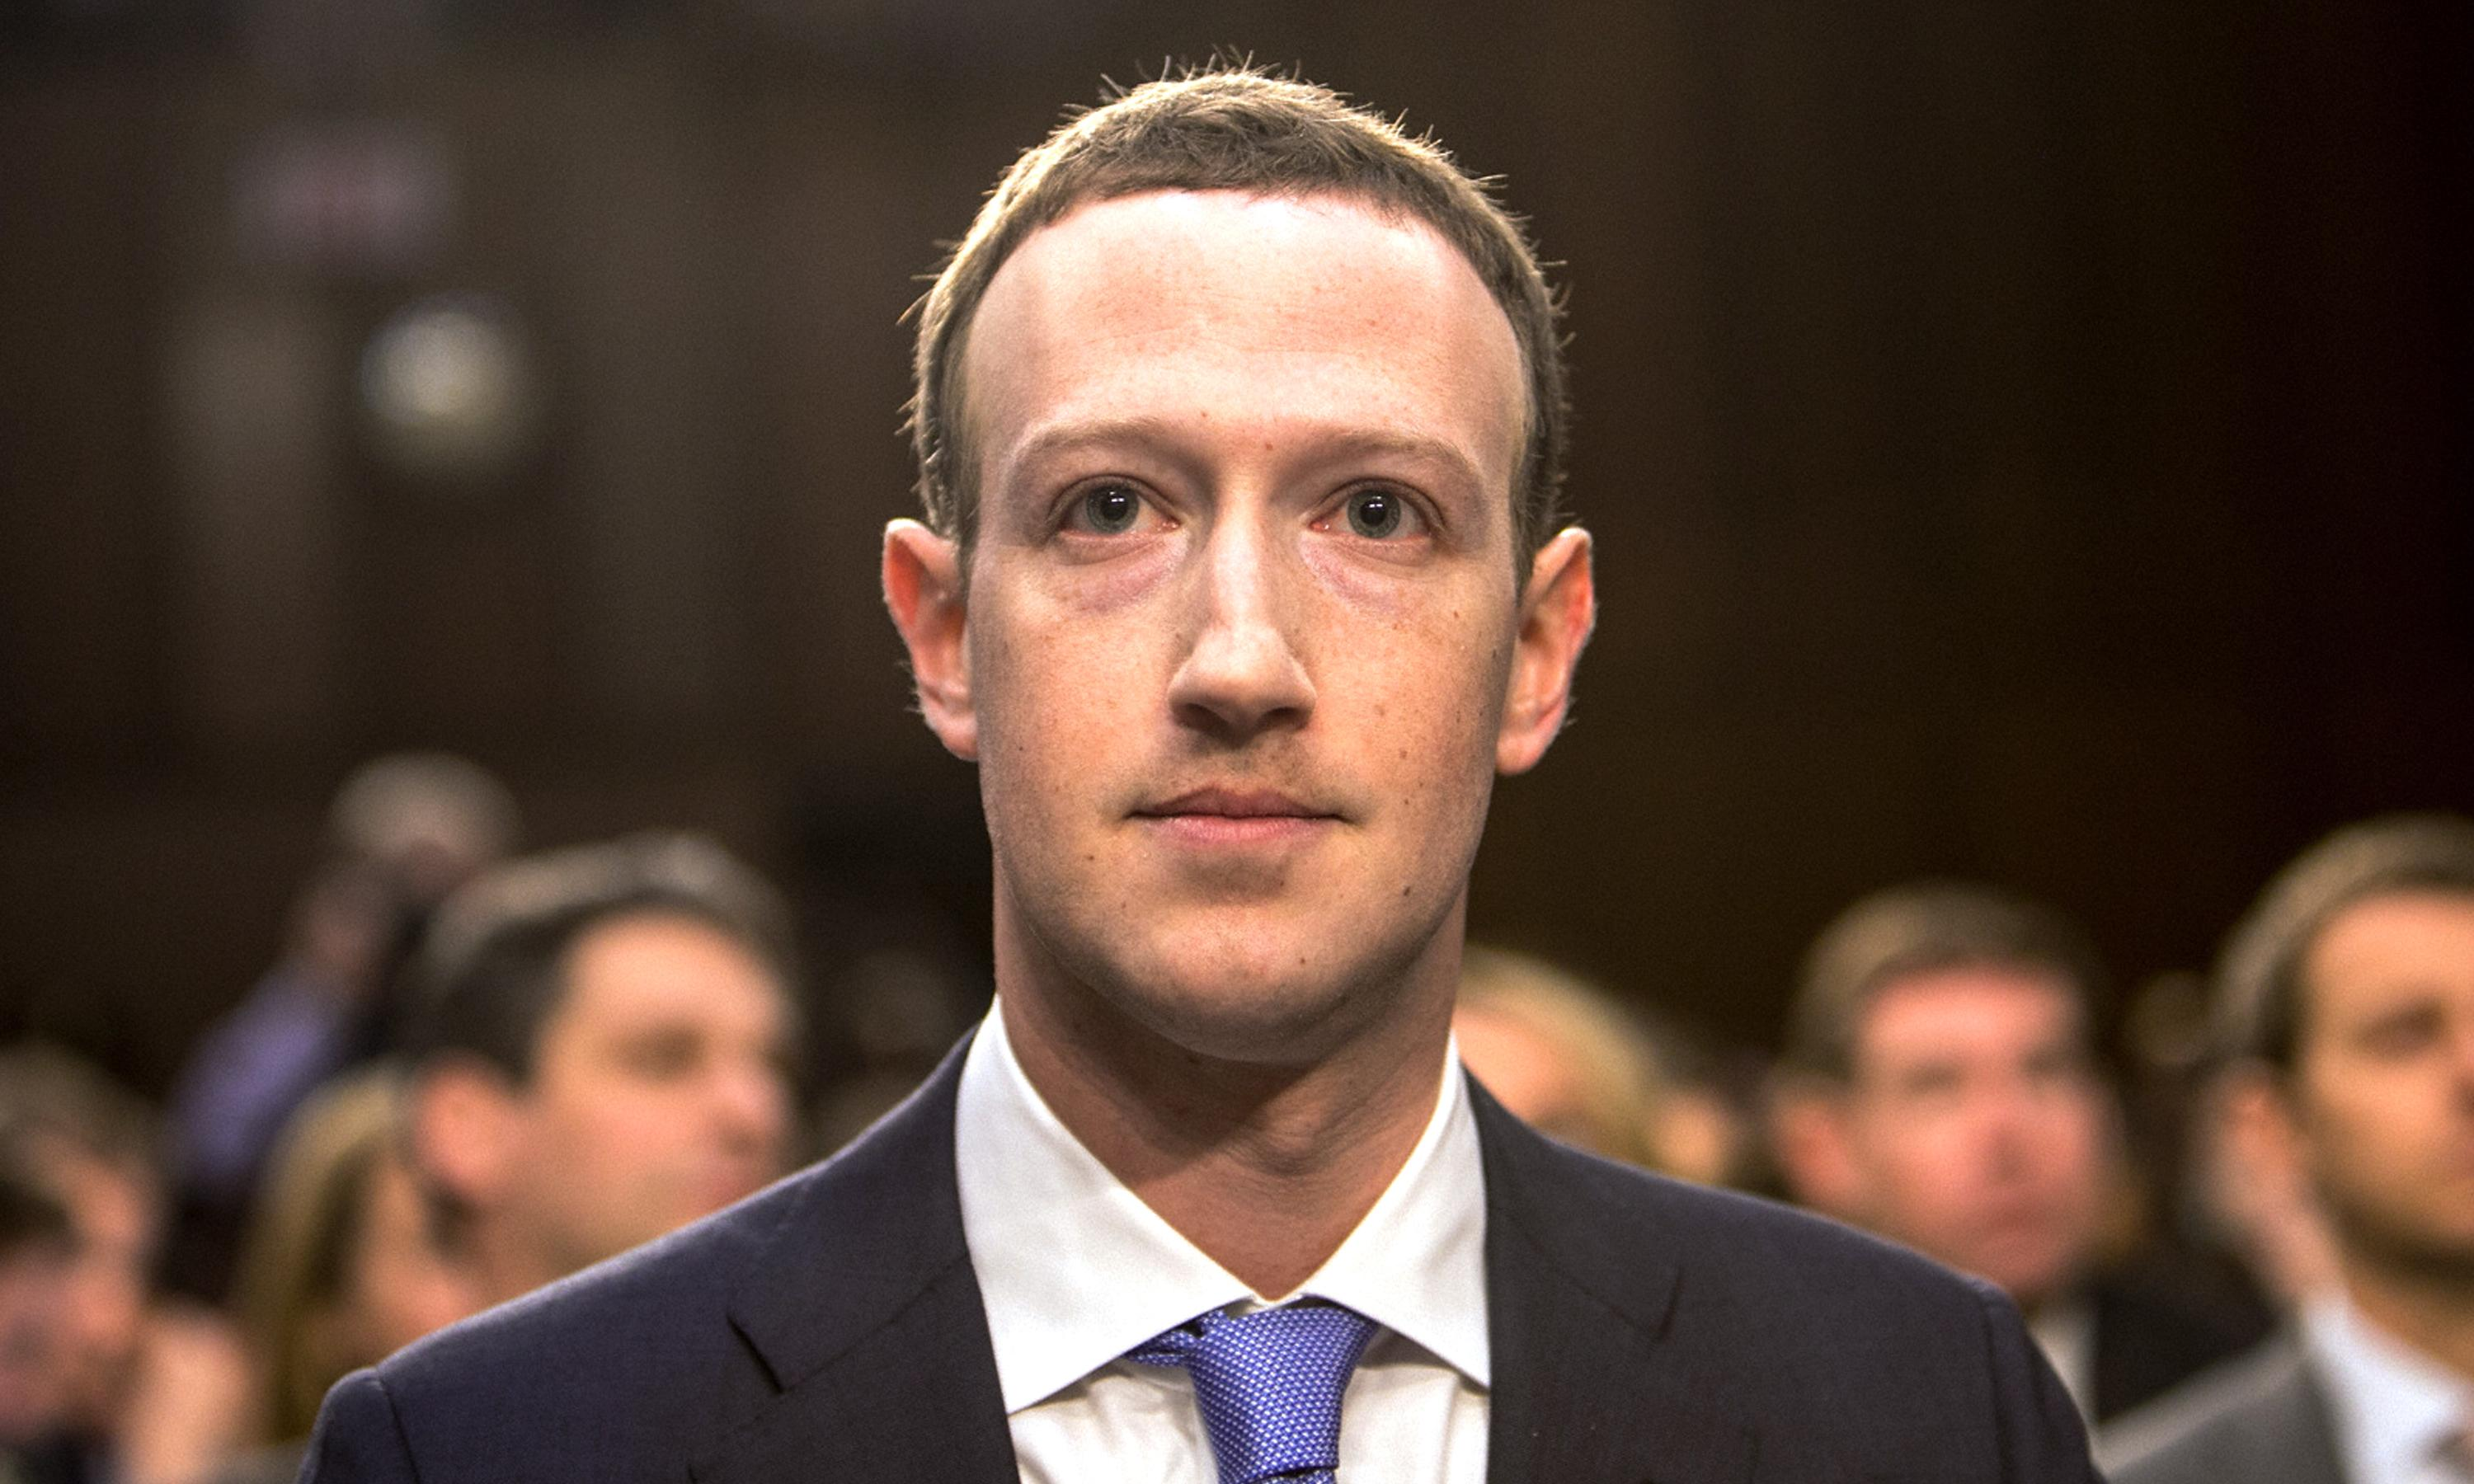 Is Facebook a publisher? In public it says no, but in court it says yes